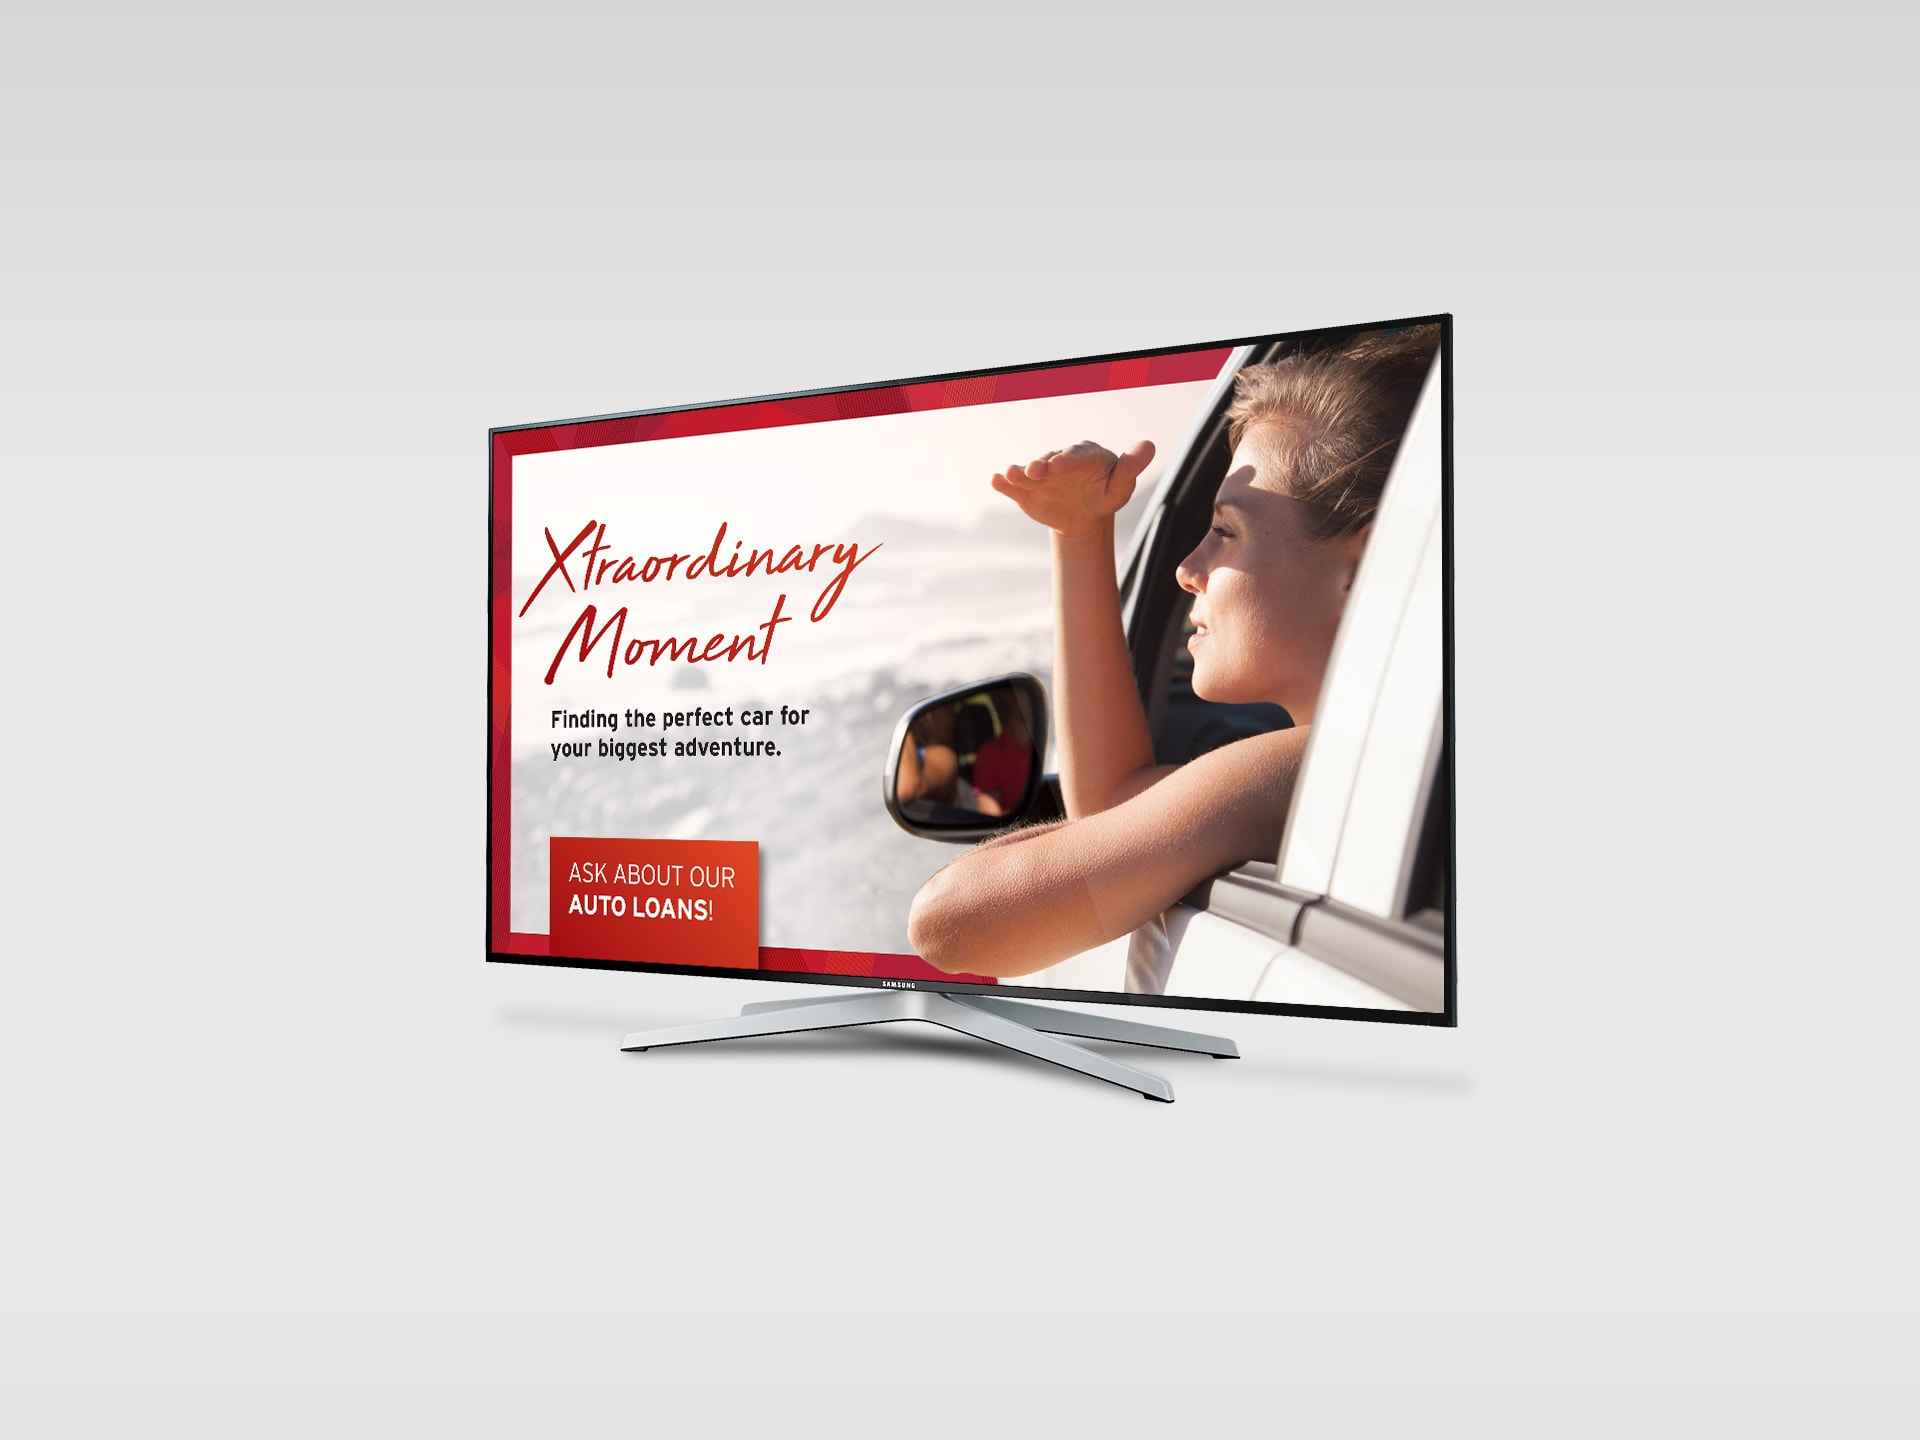 Second in-branch tv display